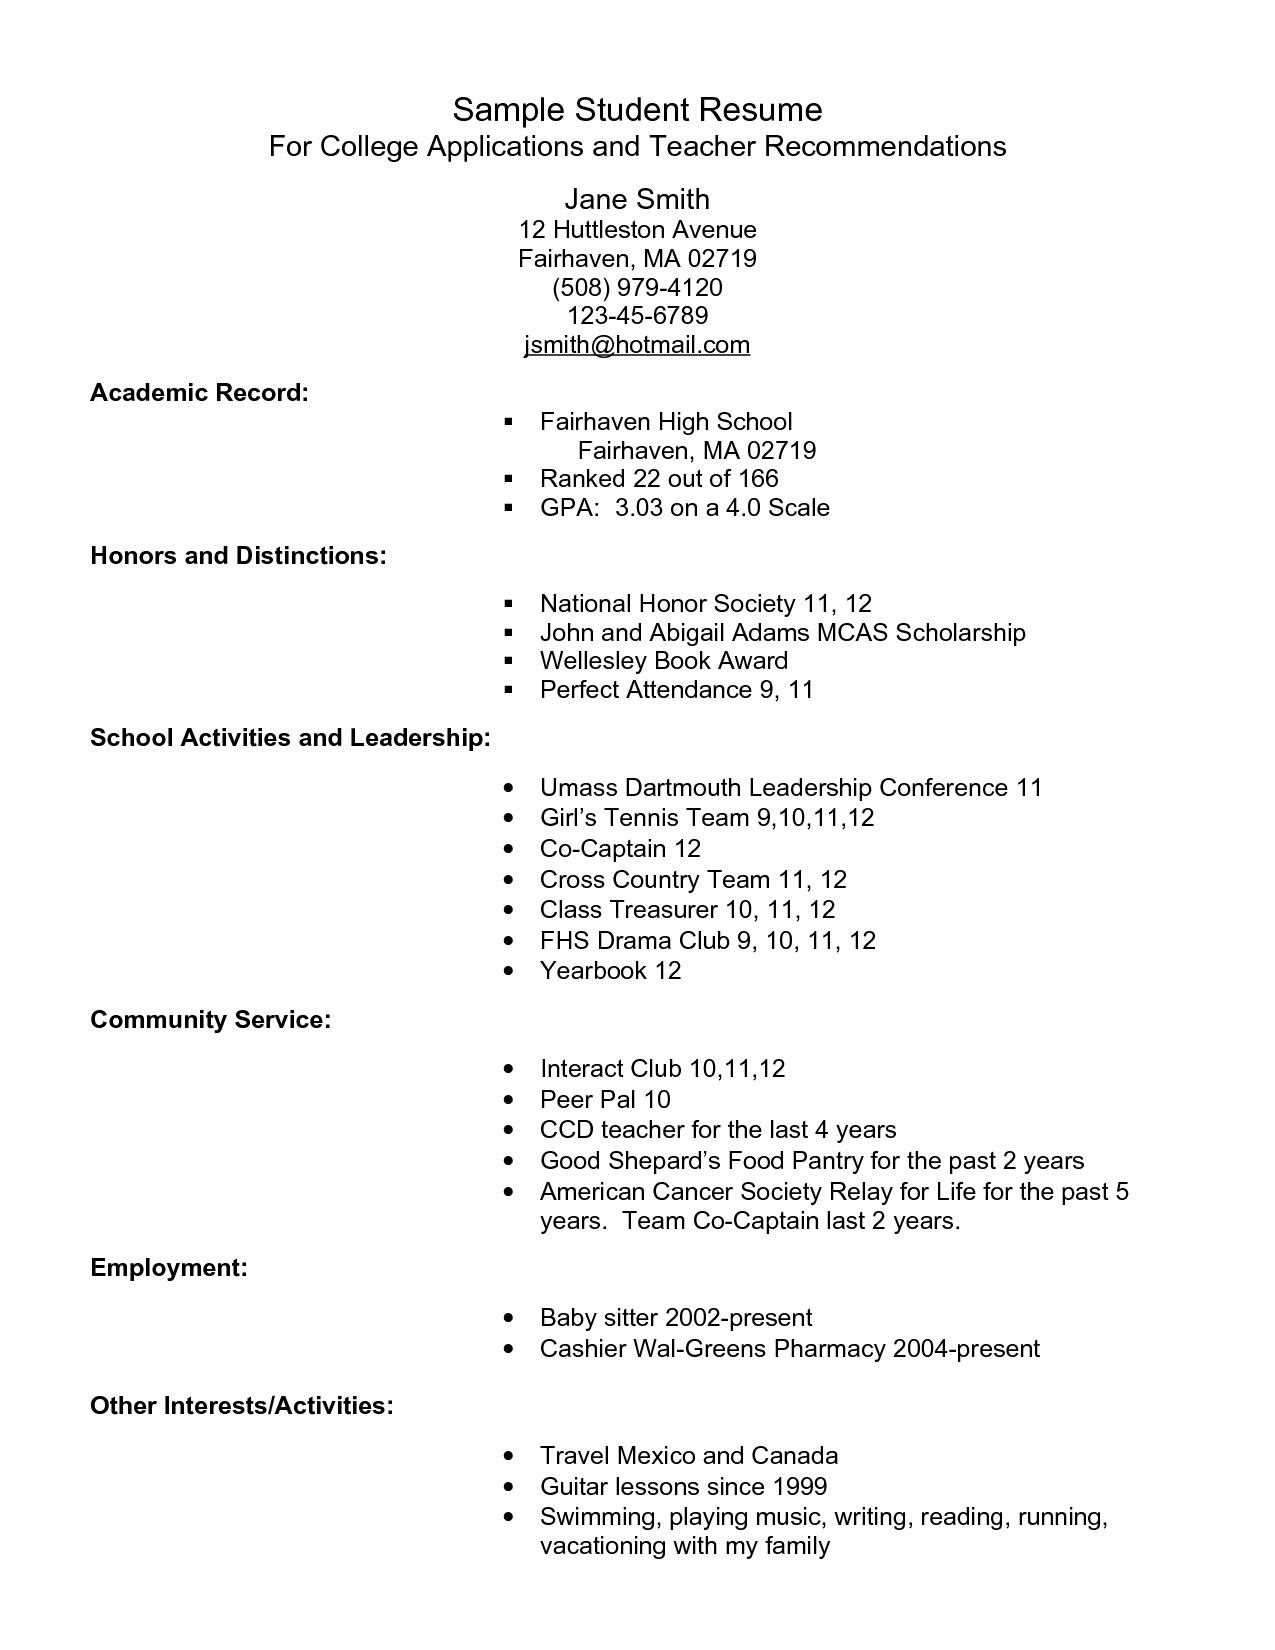 College Application Resume Template Word Beautiful College Application Resume Template